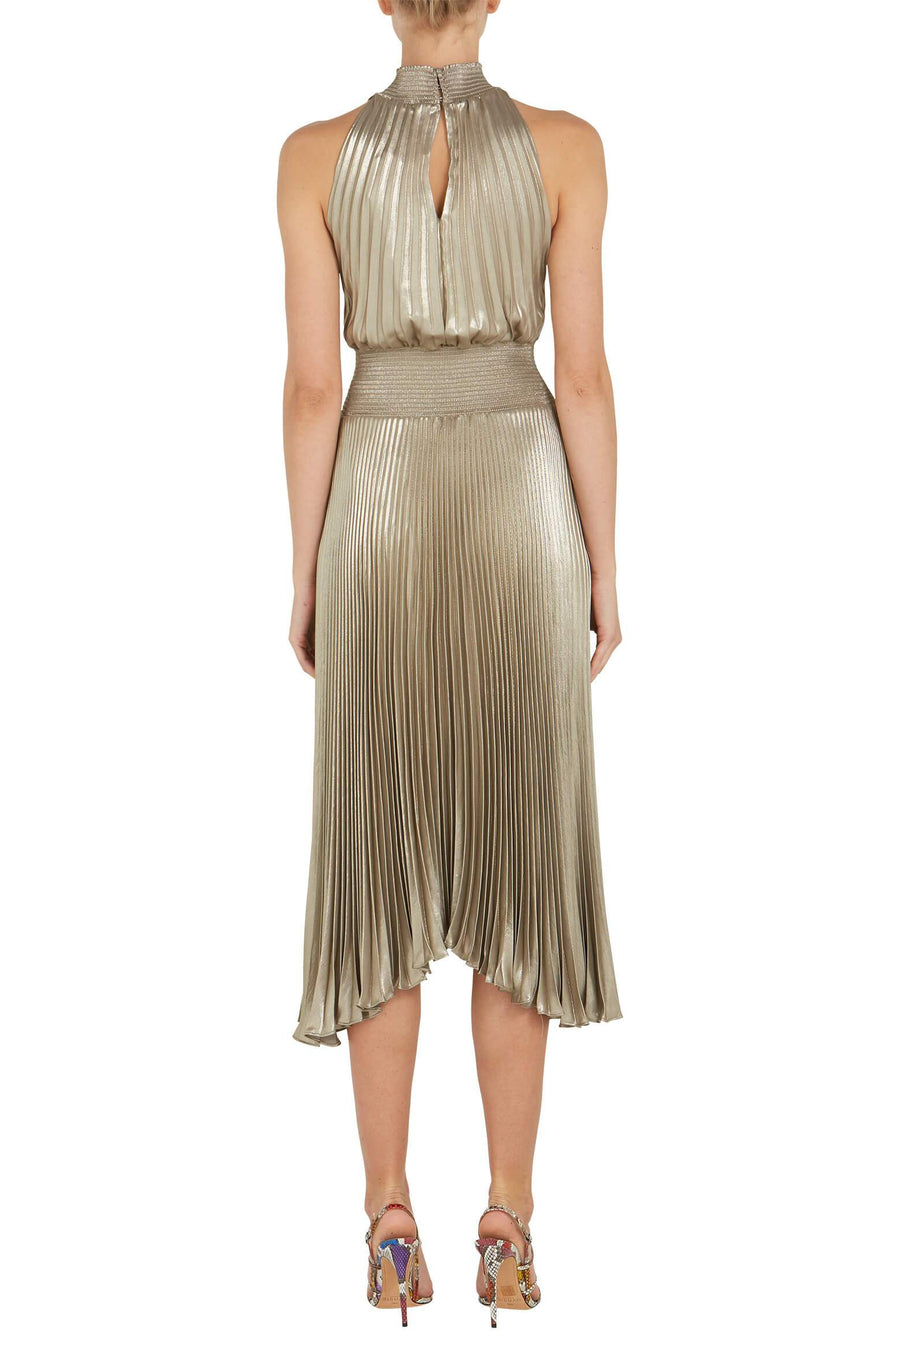 A.L.C. Renzo Dress in Antique Gold from The New Trend